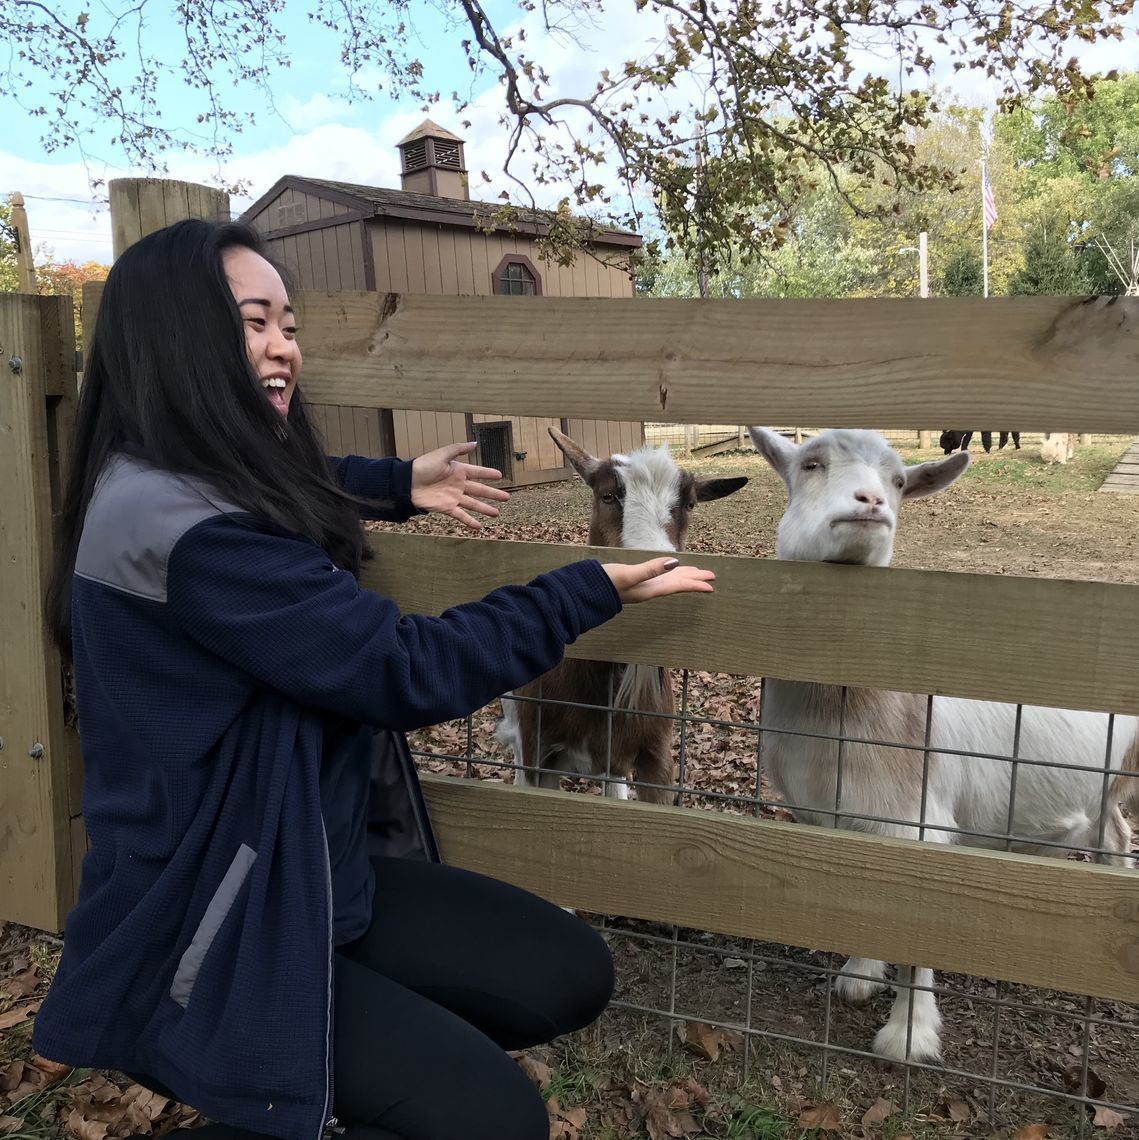 A photo of Sarah smiling and reaching out to pet two goats.